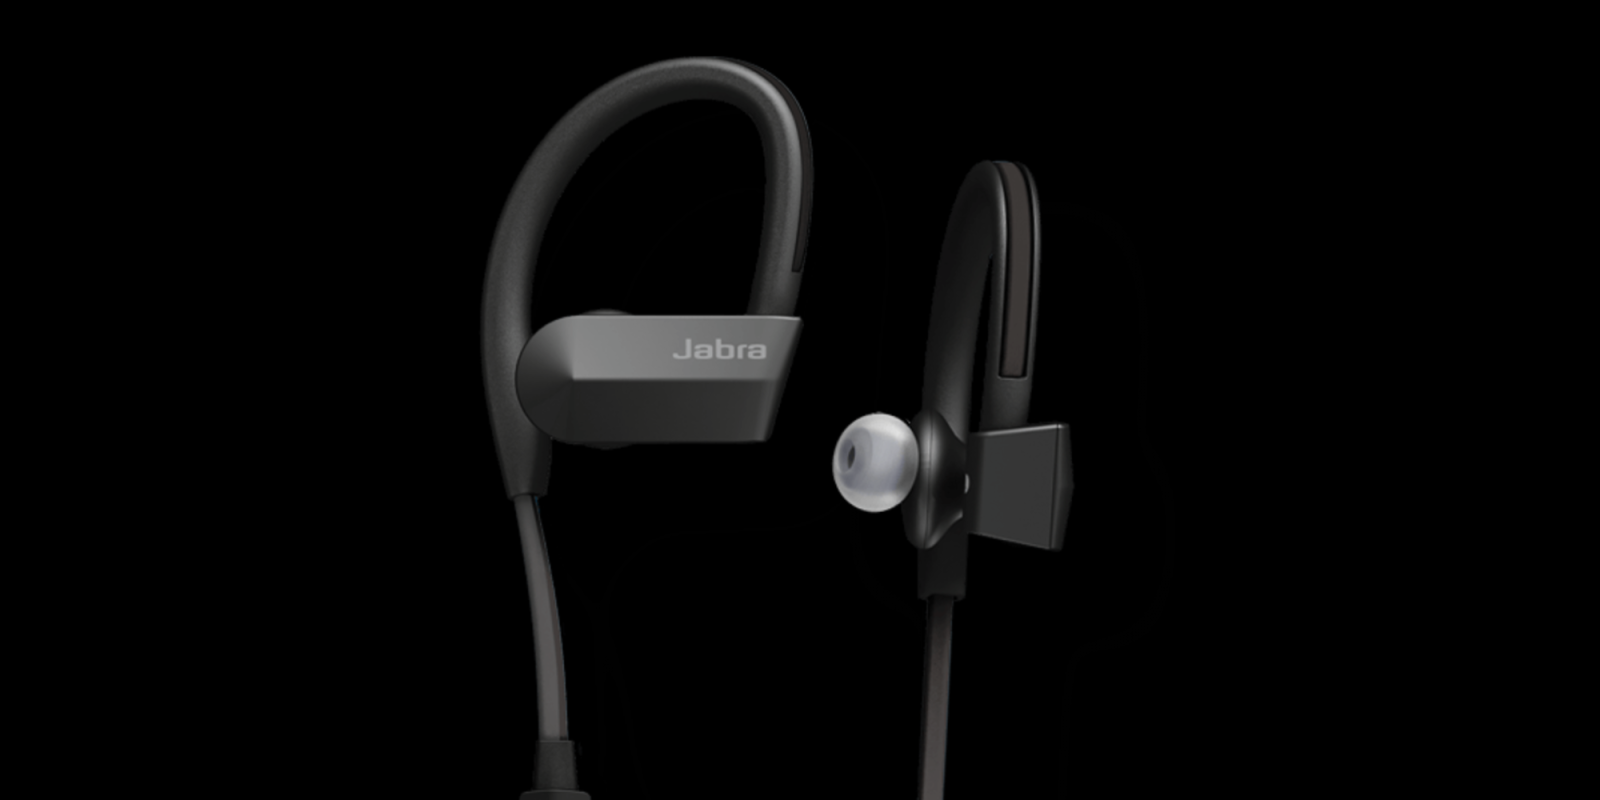 Smartphone Accessories: Jabra Sport Pace Bluetooth Earbuds $50 shipped, more